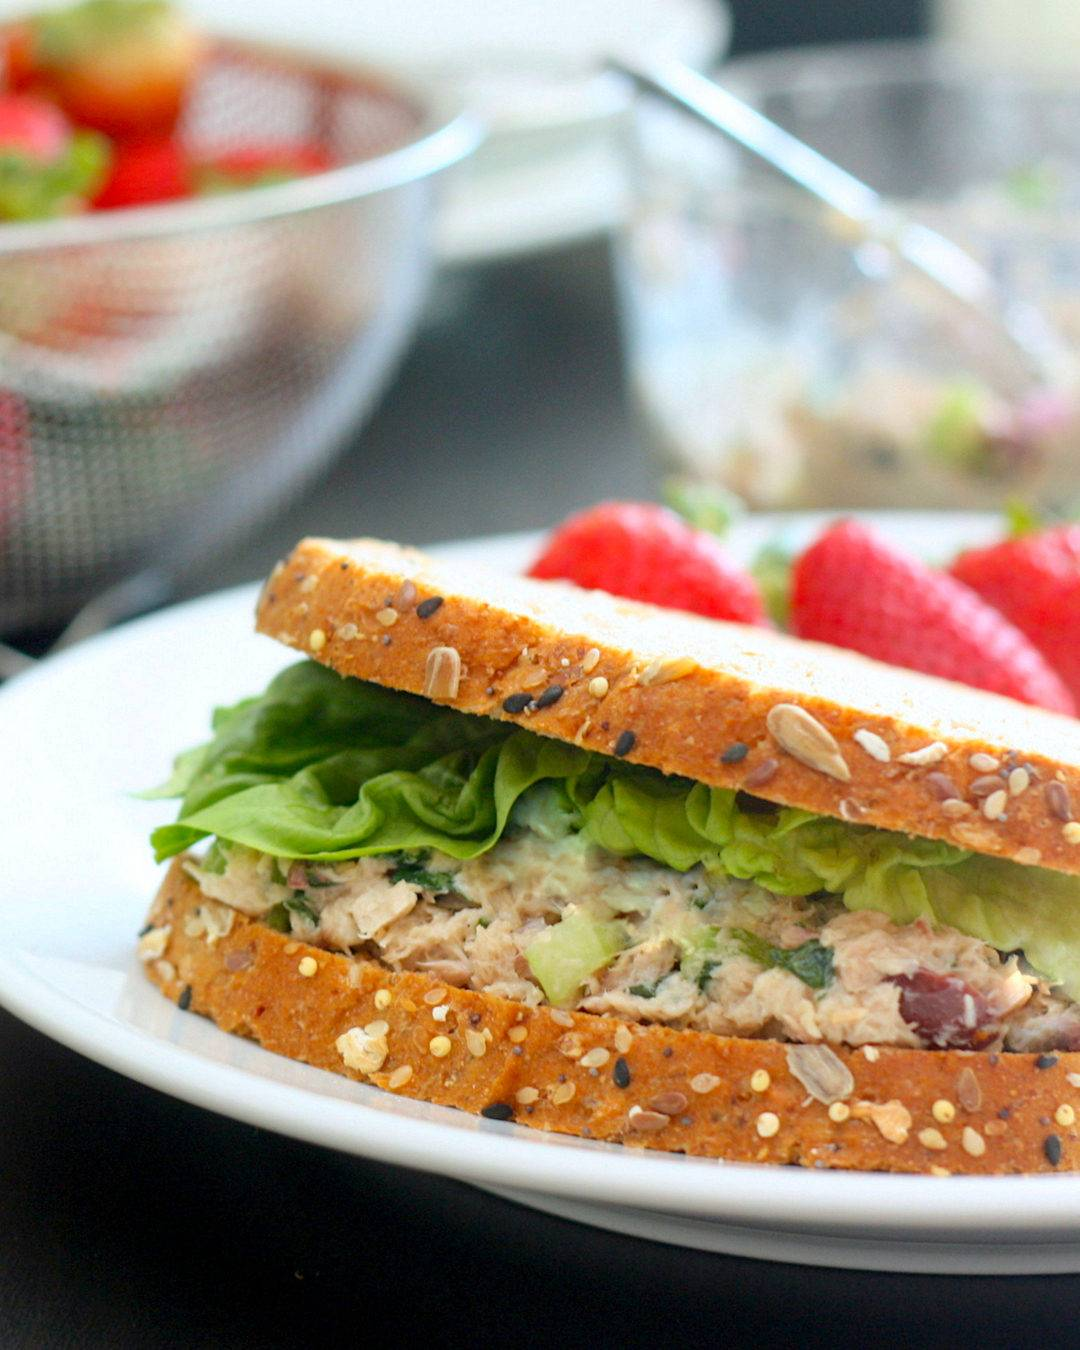 Tuna Salad Sandwich on Plate with Strawberries